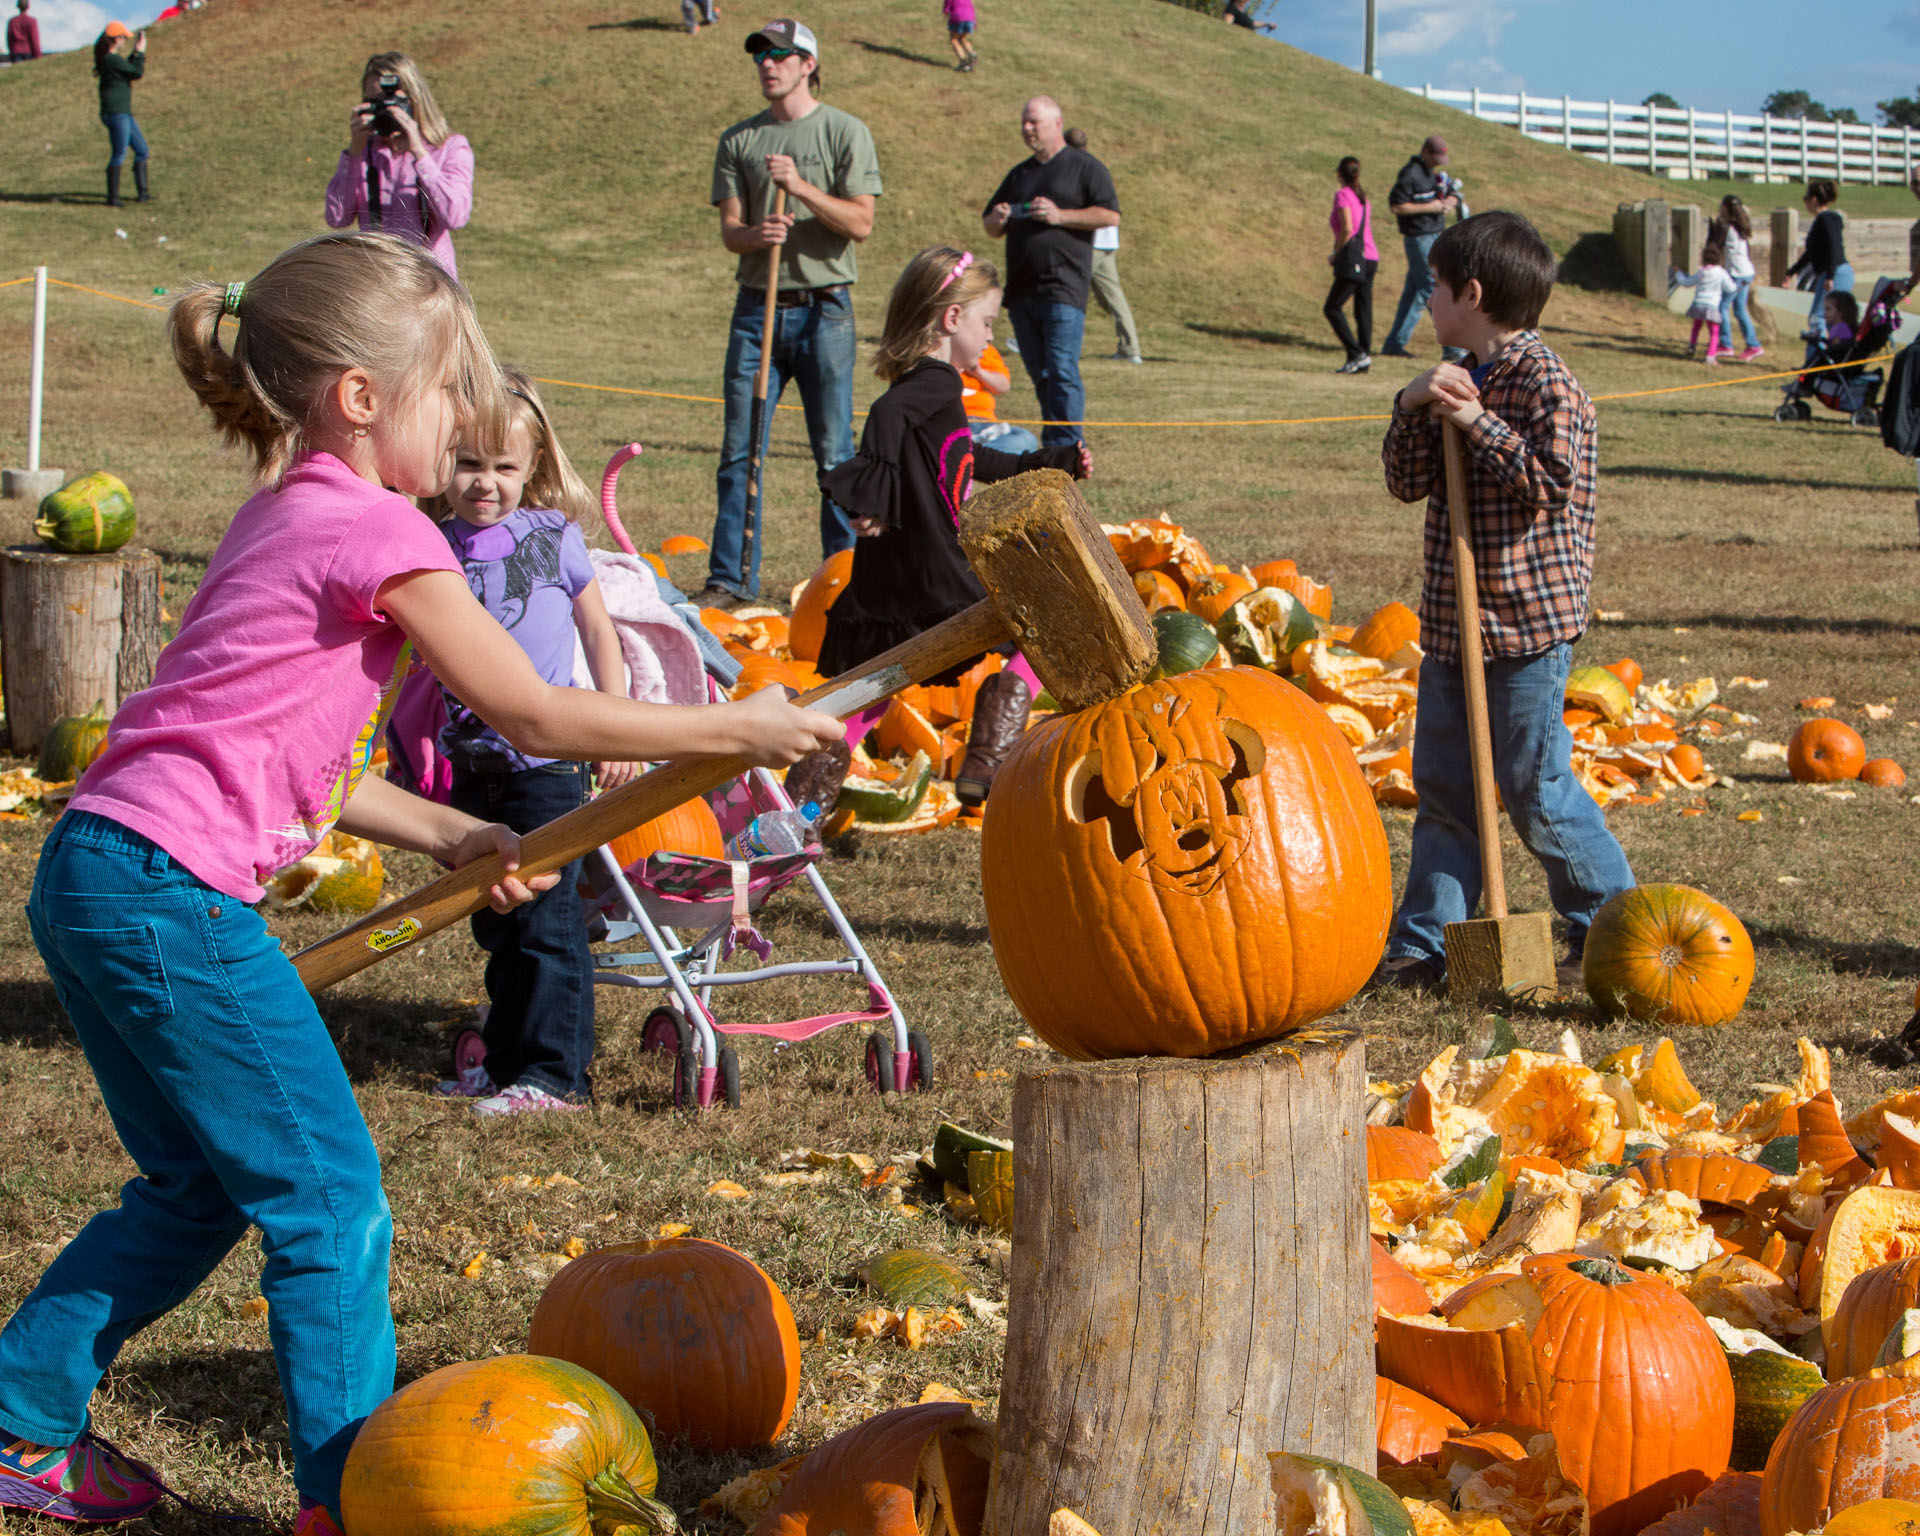 National Pumpkin Destruction Day & Monster Trucks - Fall Family Fun Days at The Rock Ranch